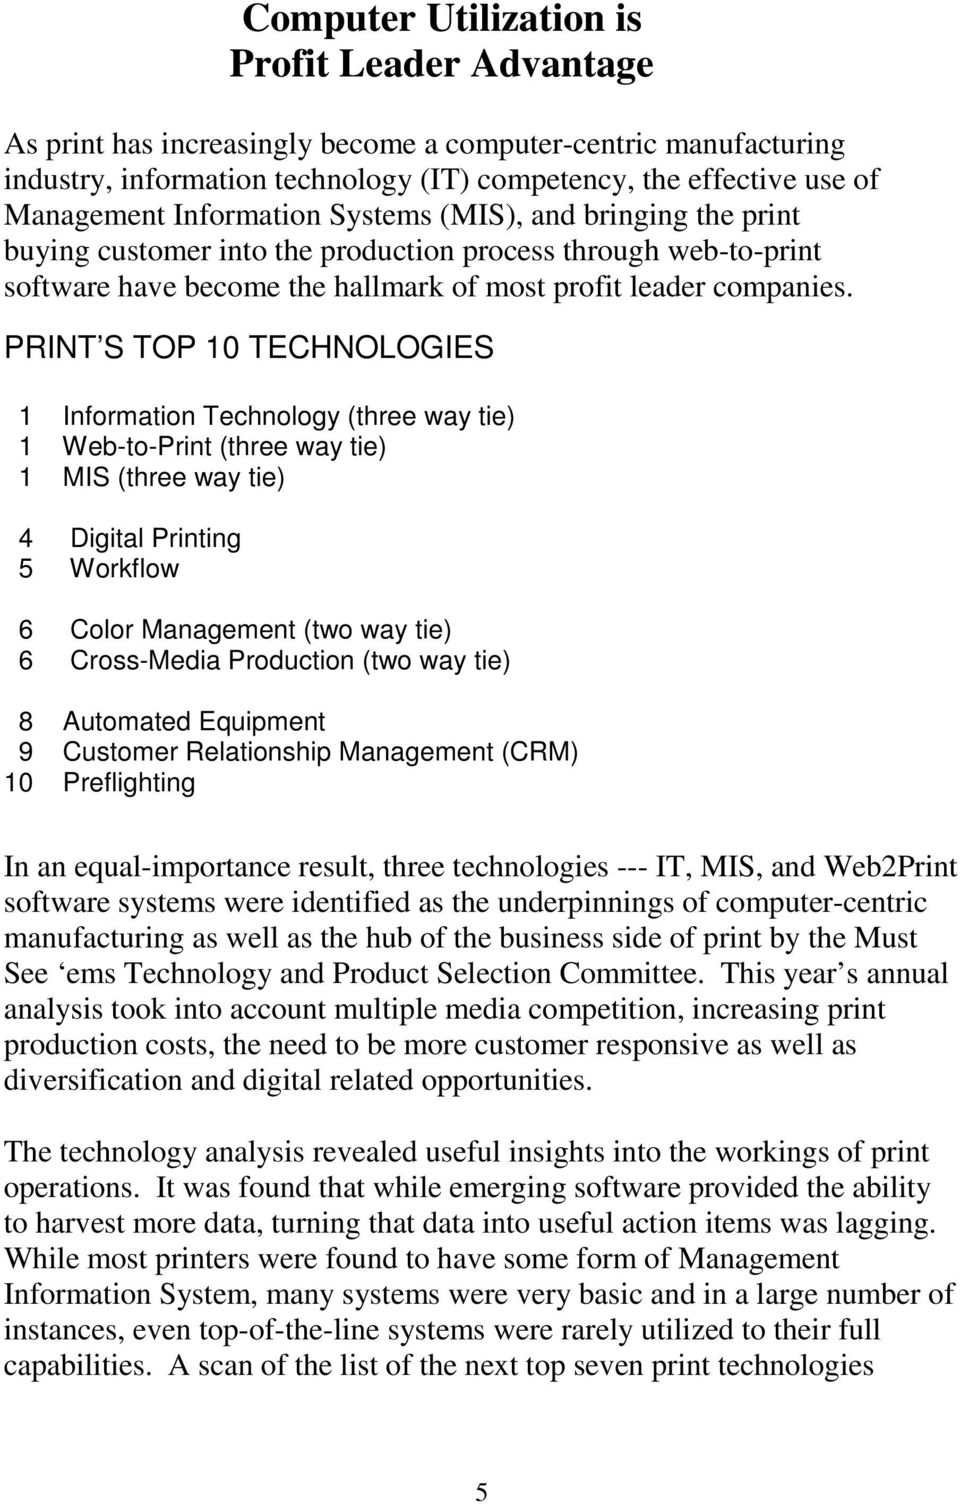 PRINT S TOP 10 TECHNOLOGIES 1 Information Technology (three way tie) 1 Web-to-Print (three way tie) 1 MIS (three way tie) 4 Digital Printing 5 Workflow 6 Color Management (two way tie) 6 Cross-Media